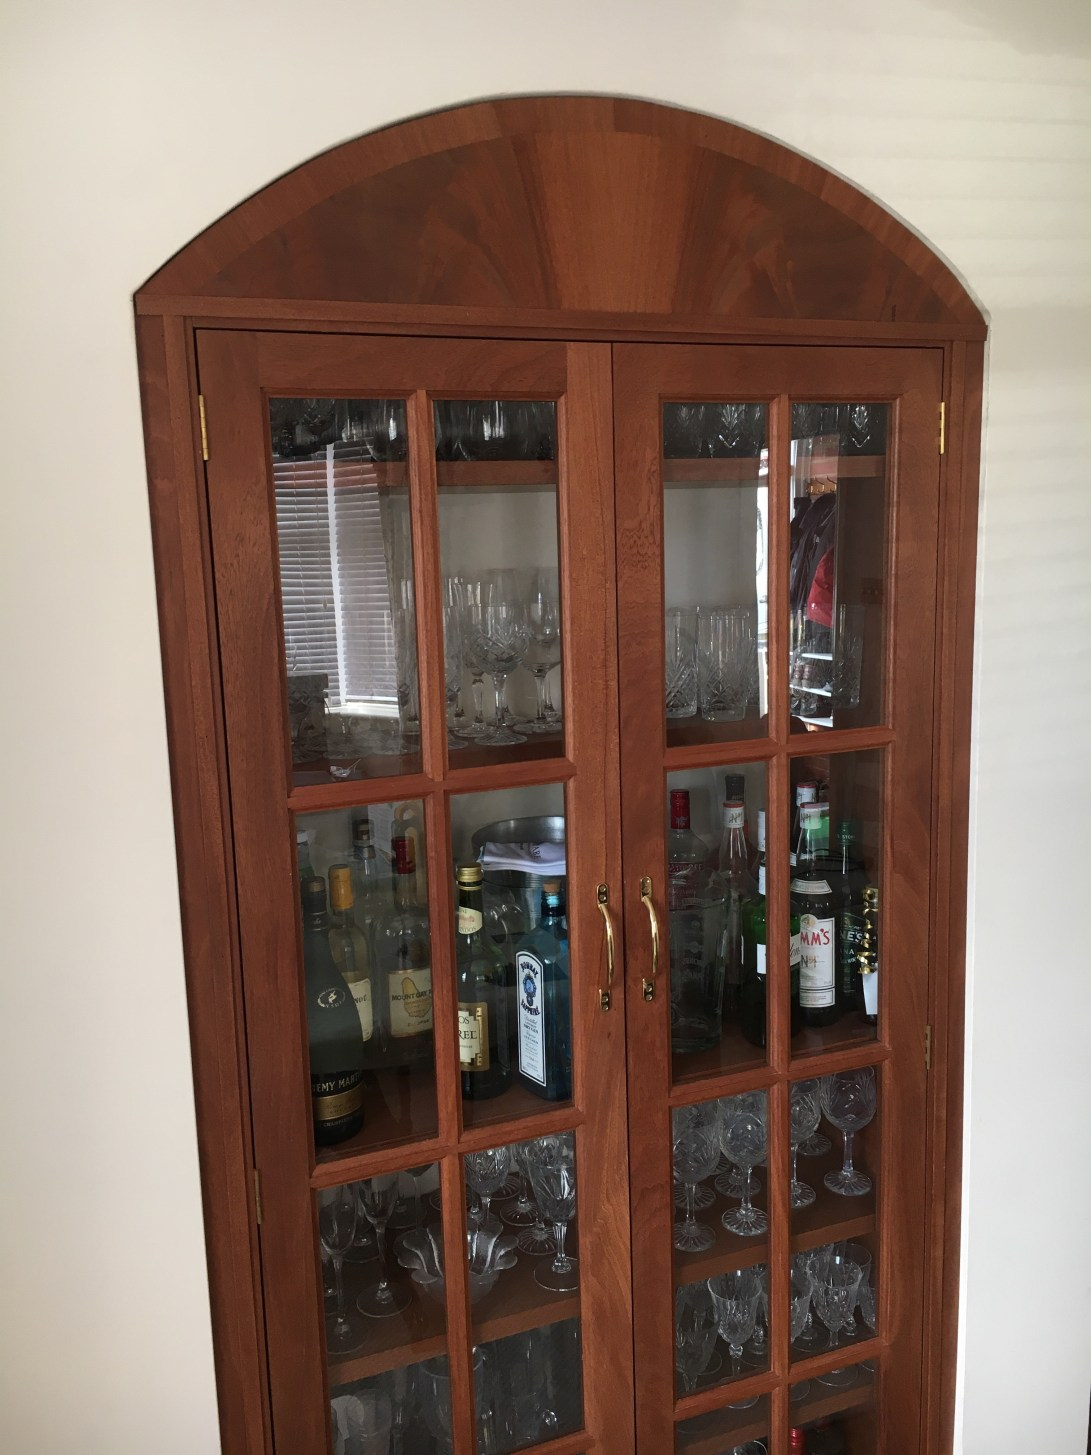 Drinks cabinet with 5 shelves